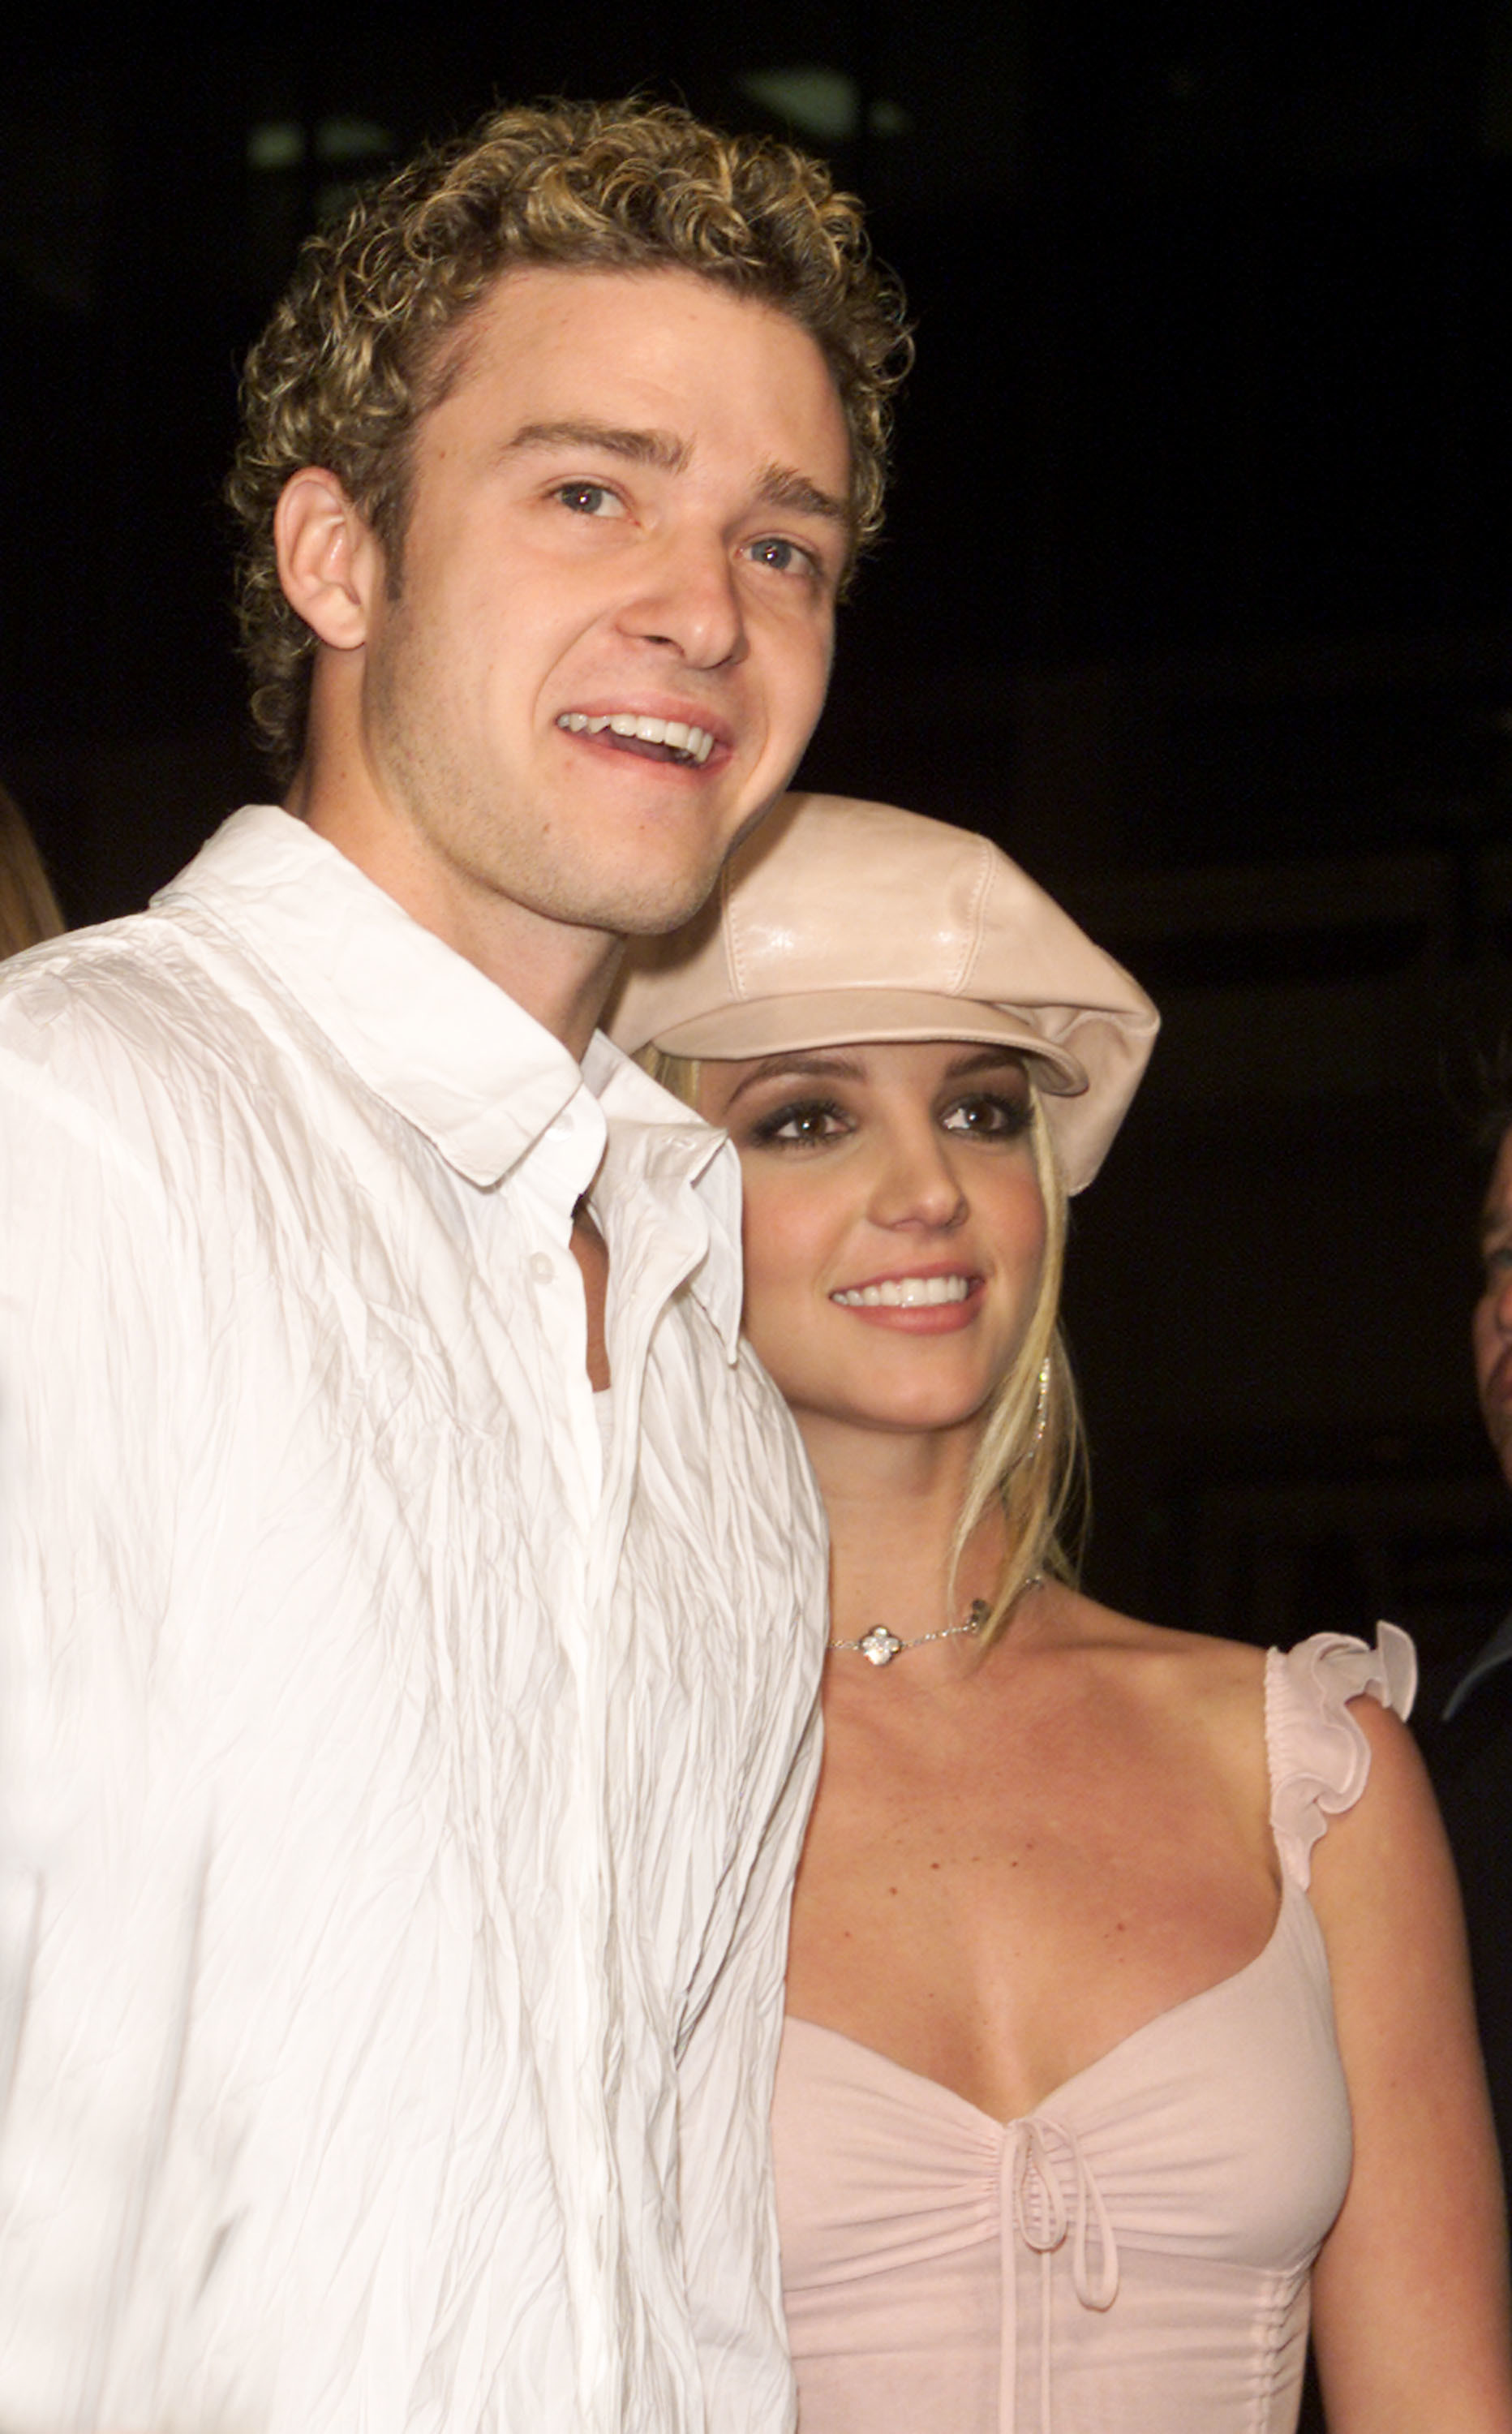 2002 Britney Spears Justin Timberlake The Most Tragic Celebrity Breakups Of The Last 30 Years Livingly